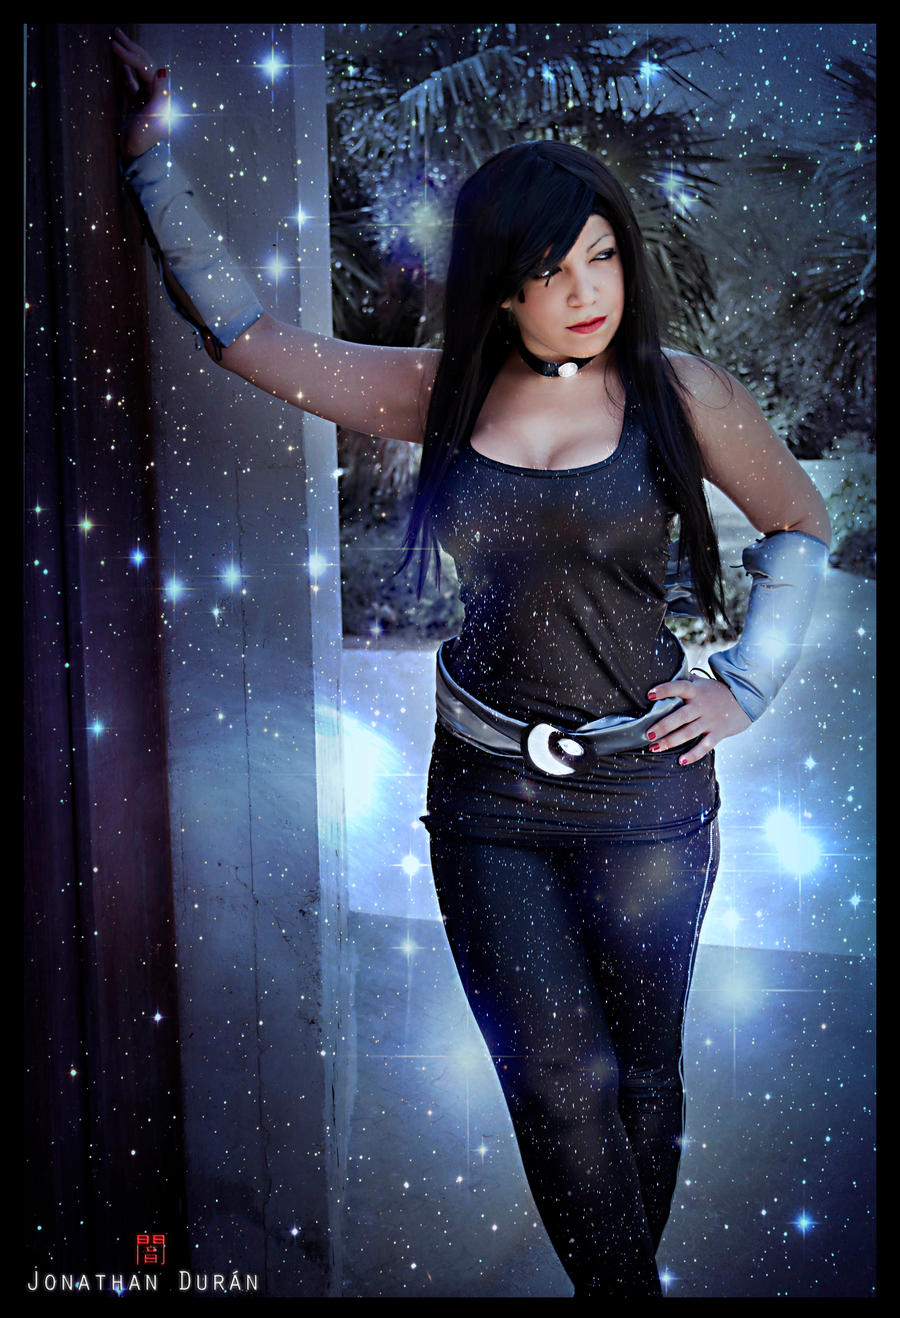 Donna Troy - A whisper from the Moon by JonathanDuran